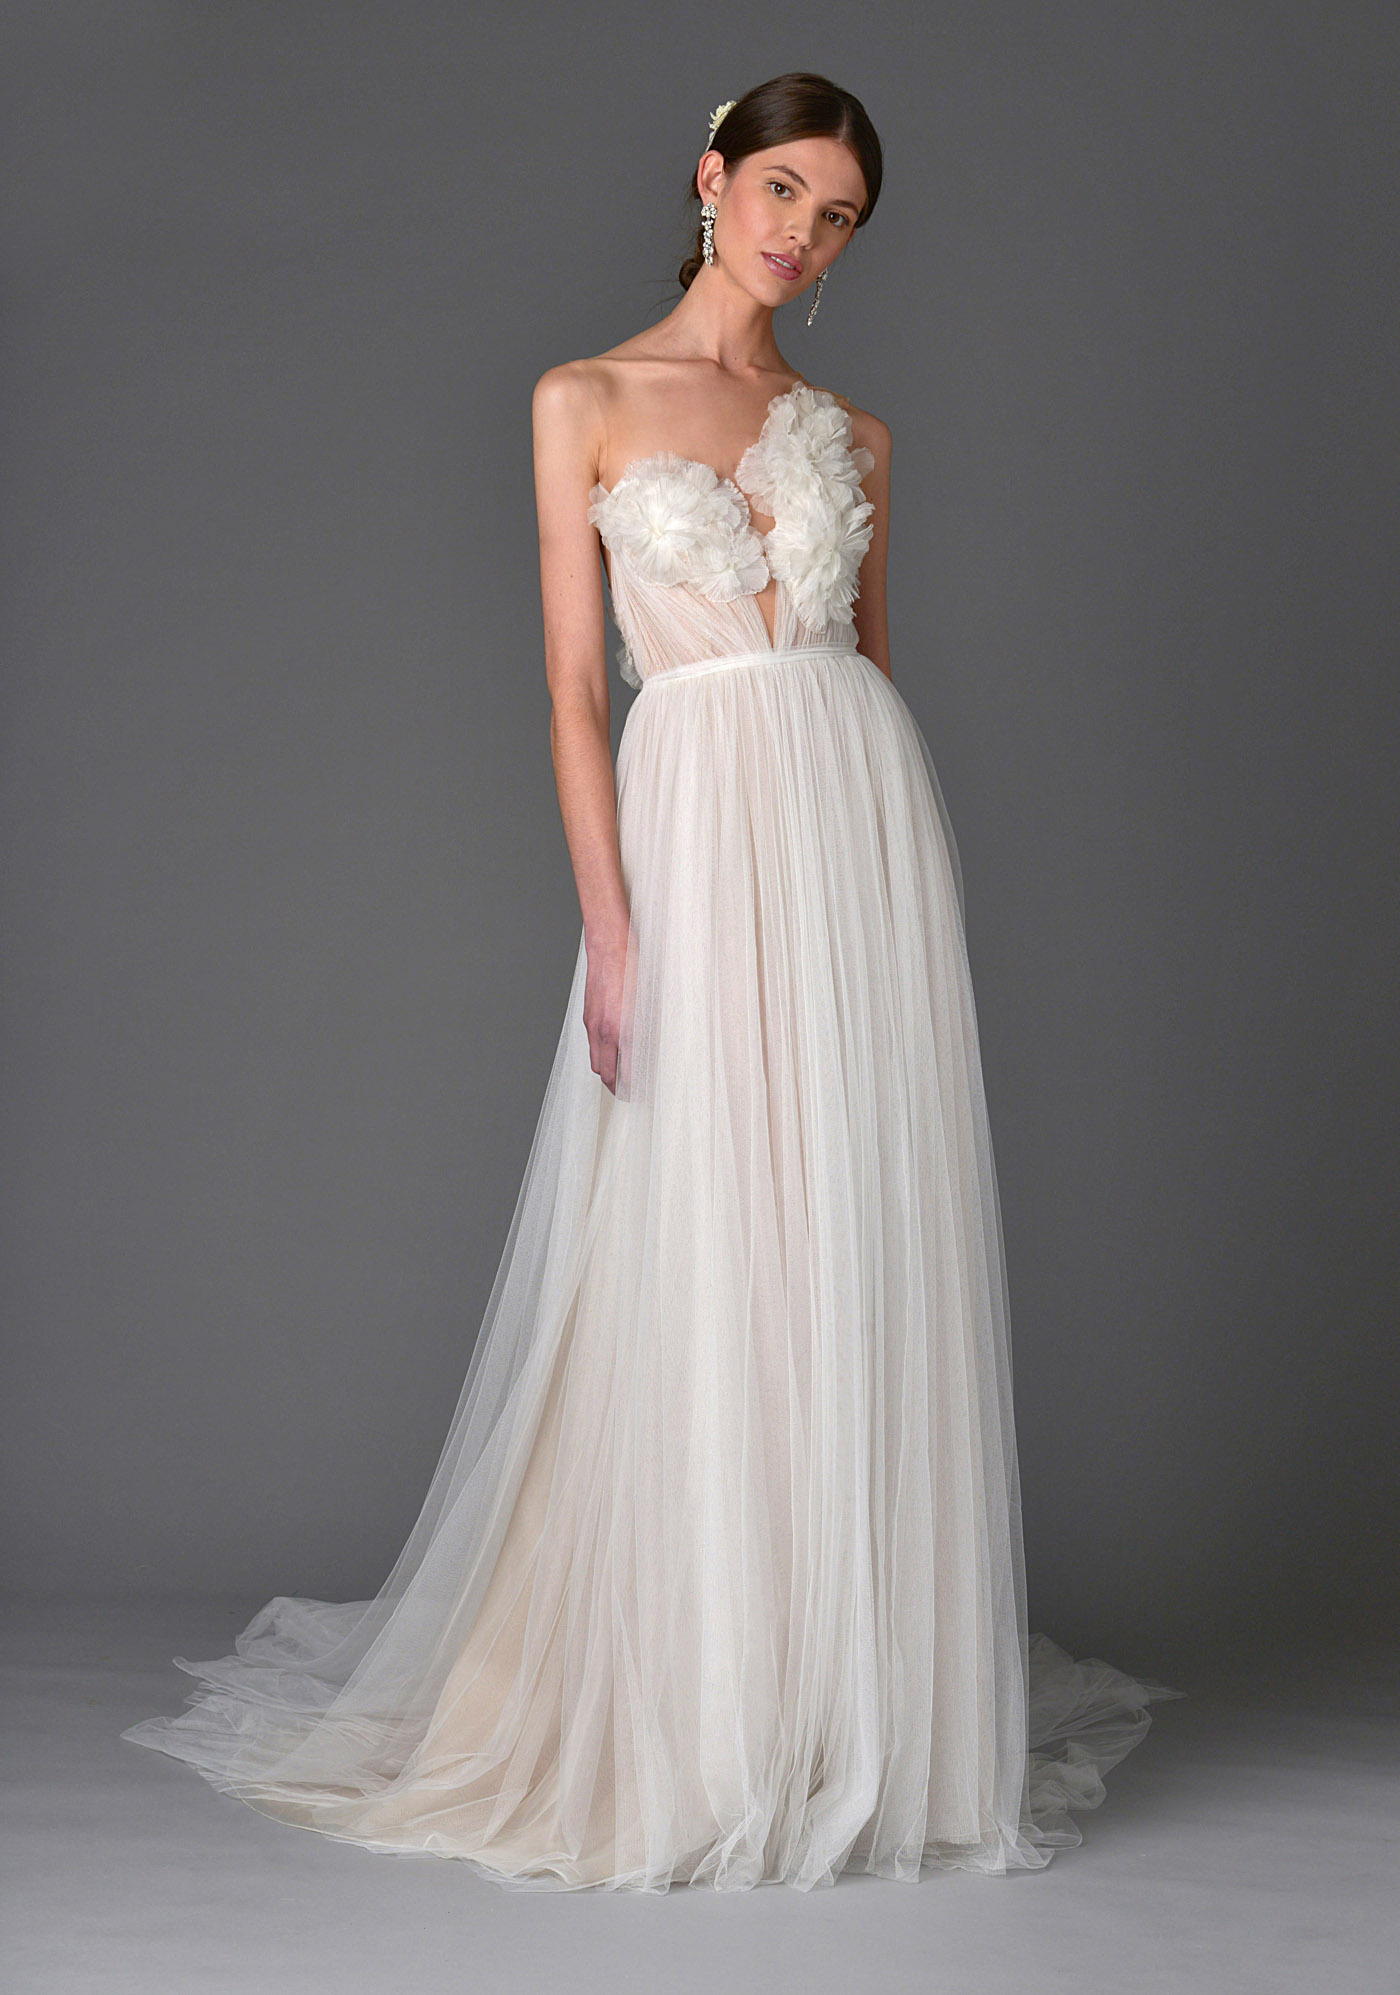 wedding dresses by marchesa spring summer marchesa wedding dresses Marchesa Bridal Spring Lookbook April 13